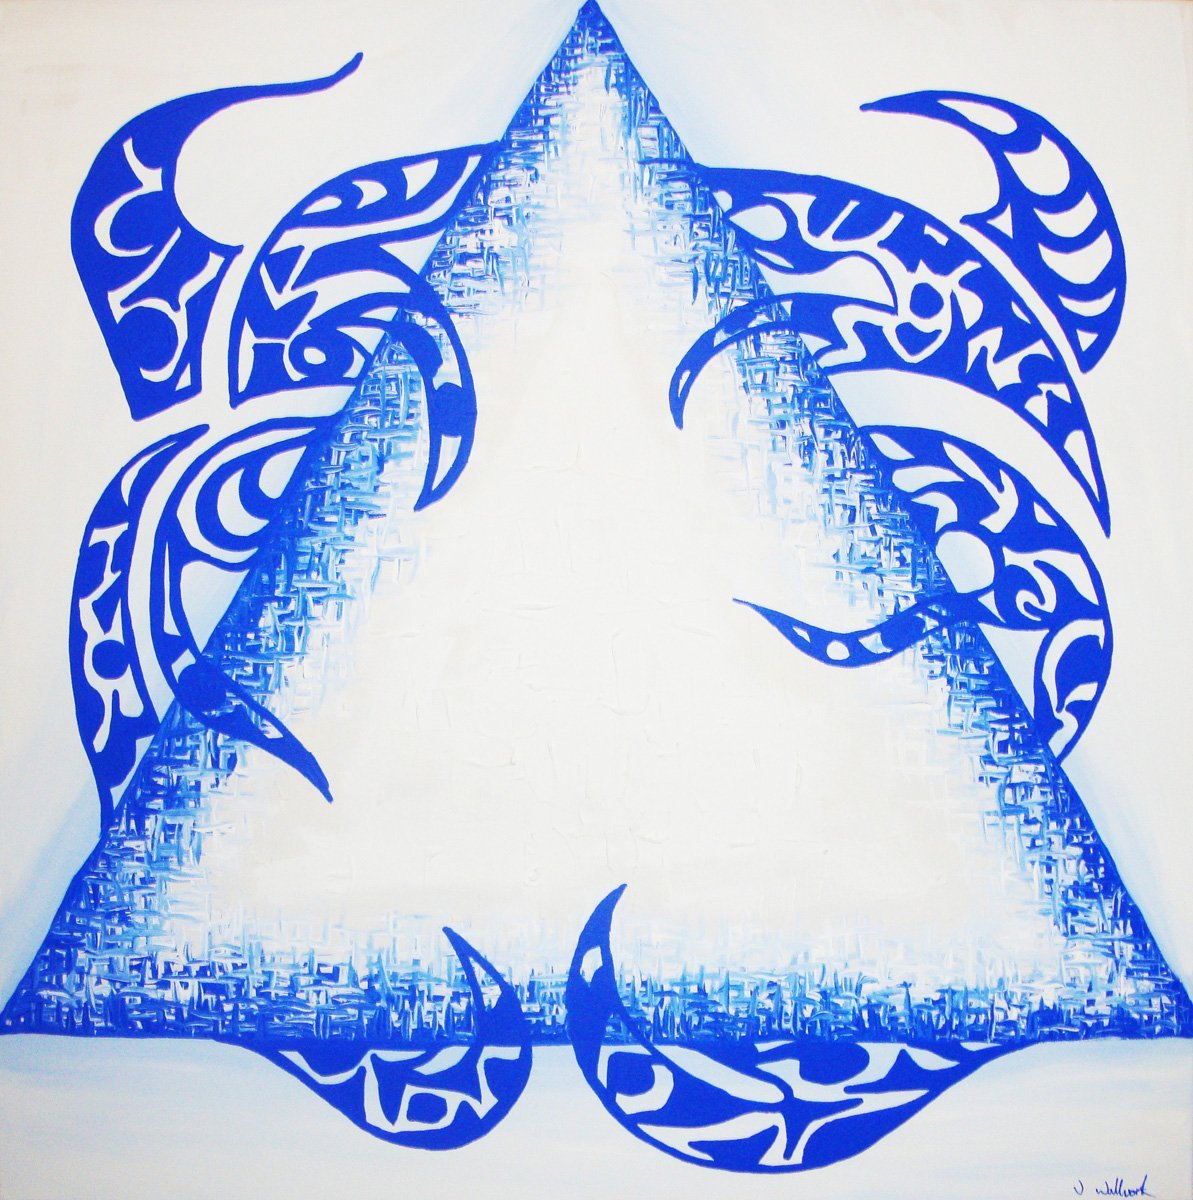 The image shows a piece of artwork by Jina Wallwork. It is a painting of a triangle. Stylistically this piece of artwork has links with abstract art.